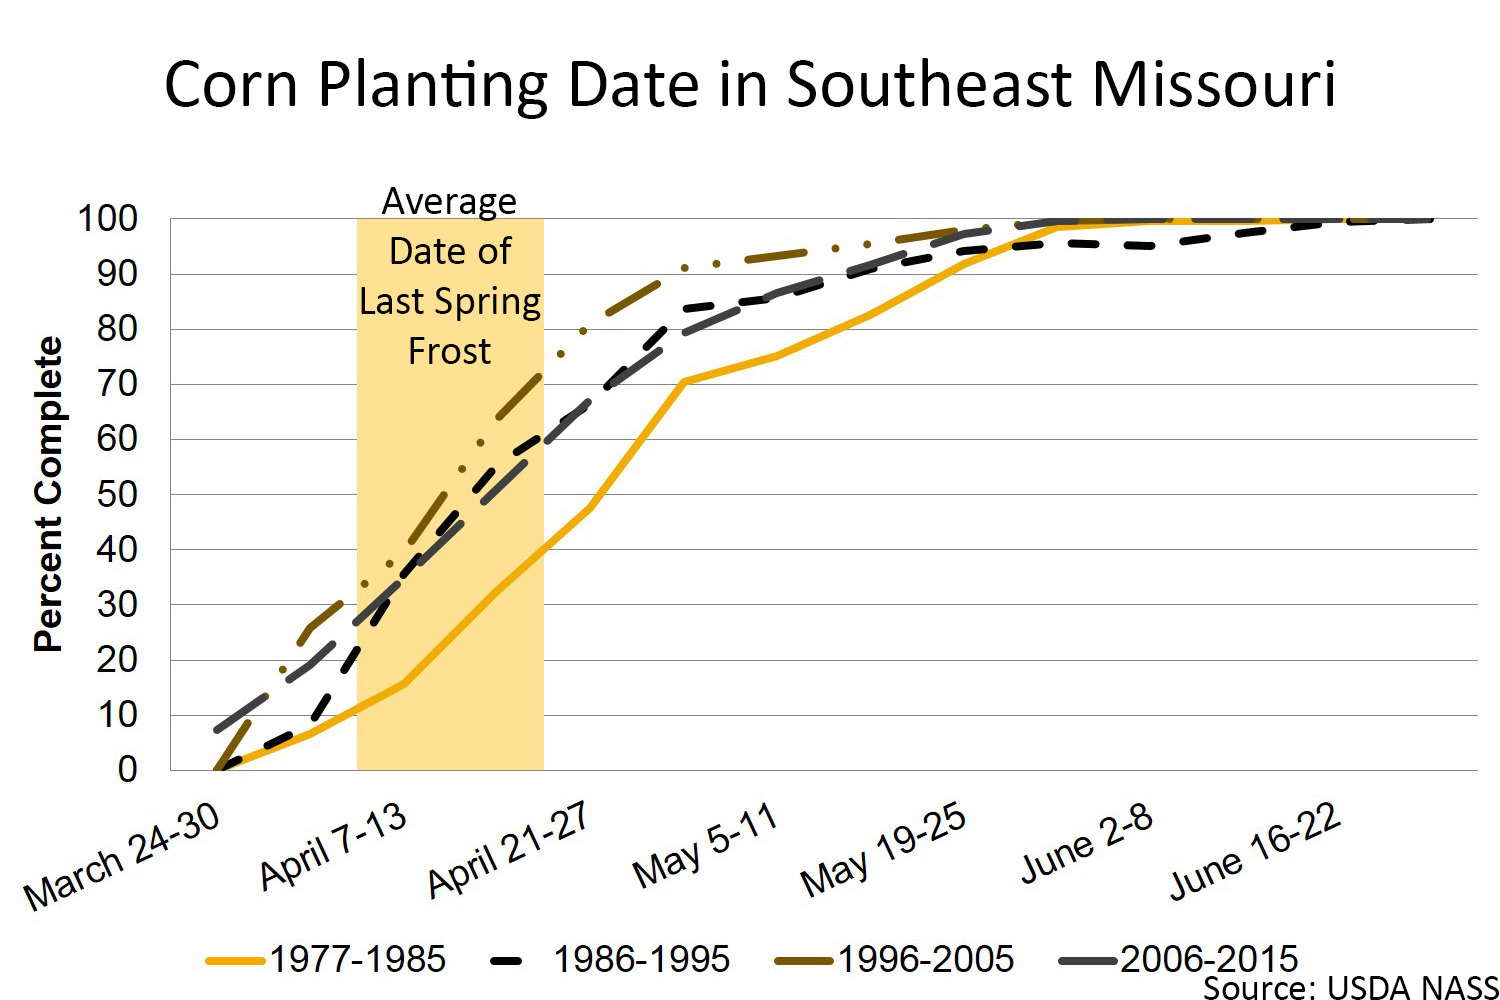 Corn planting date in southeast Missouri chart